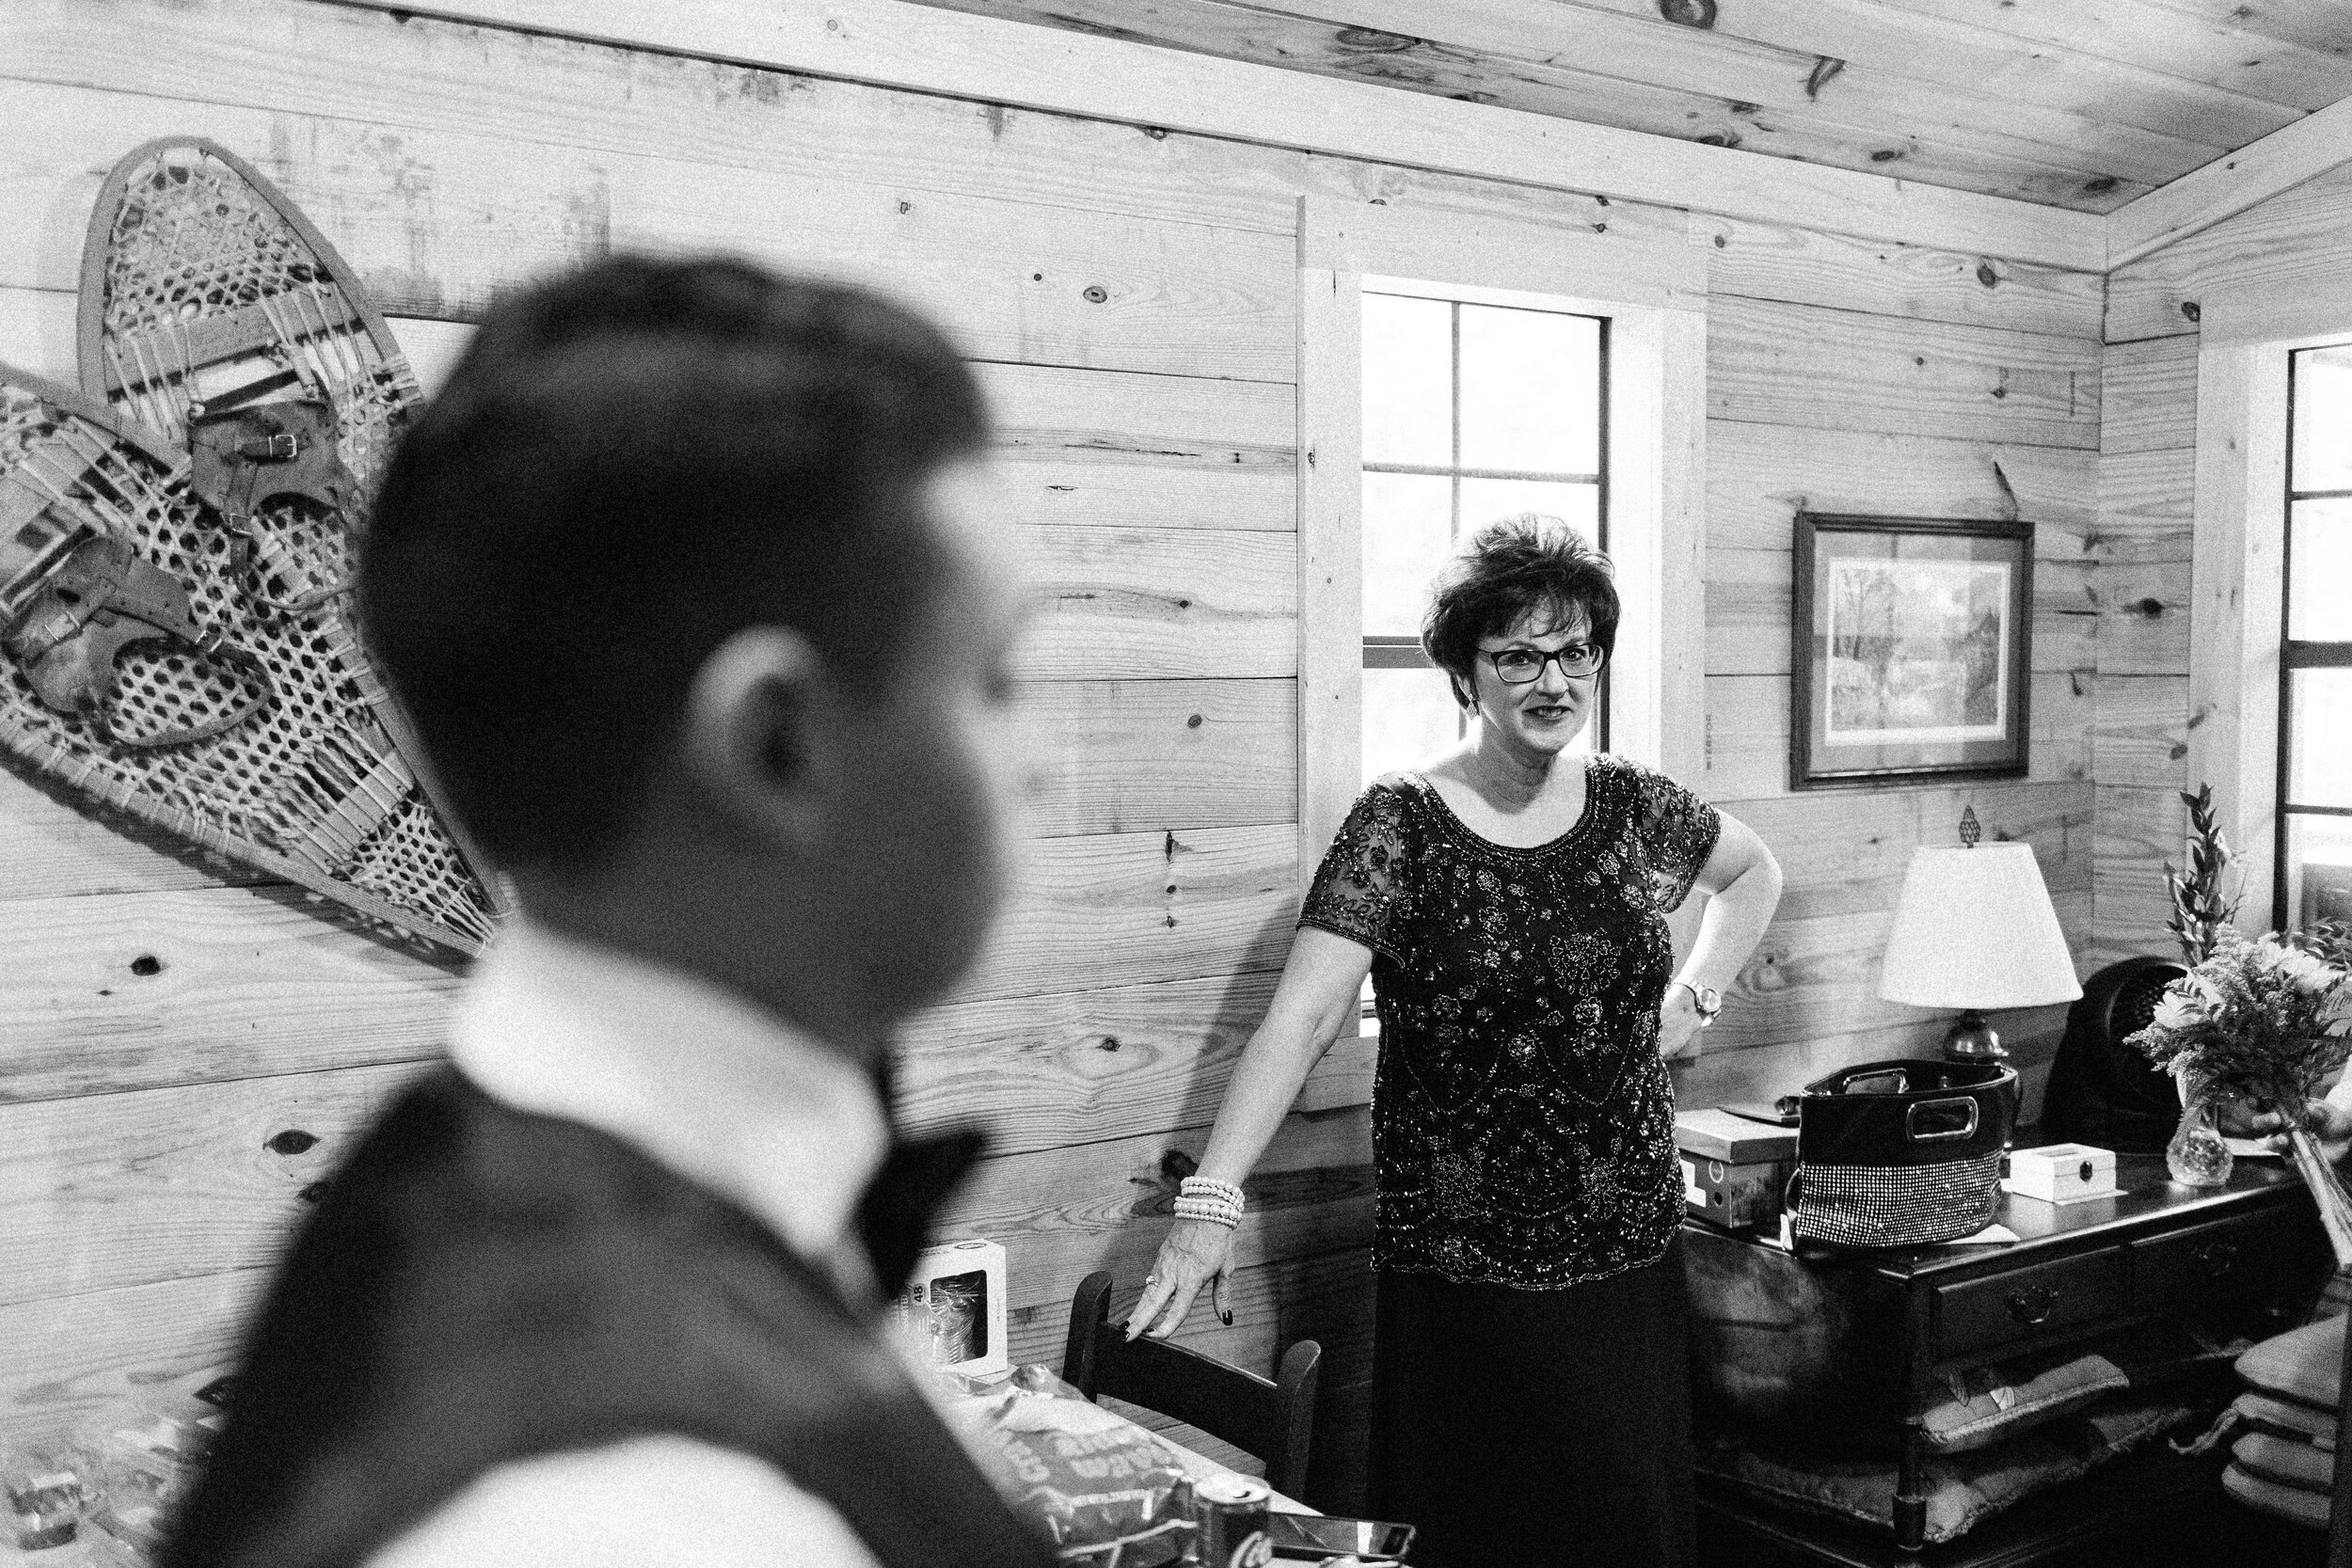 atlanta_wedding_photographers_georgia_same_sex_rustic_barn_farm_lesbian_weddings_inclusive_1279.jpg